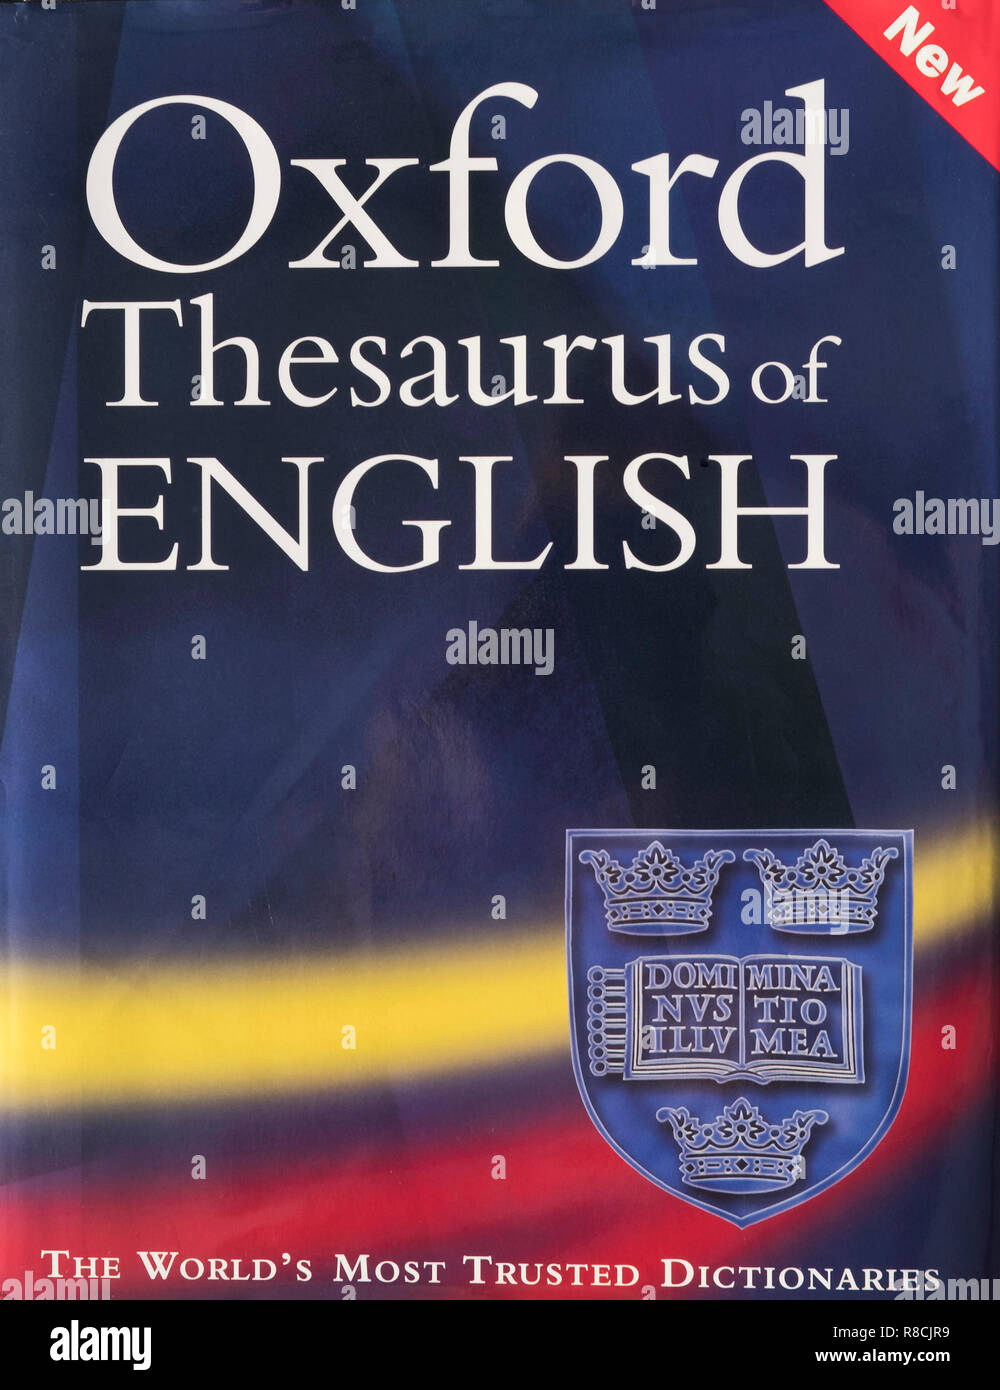 dh English Thesaurus book BOOKS UK Front cover Oxford dictionaries books  hardback